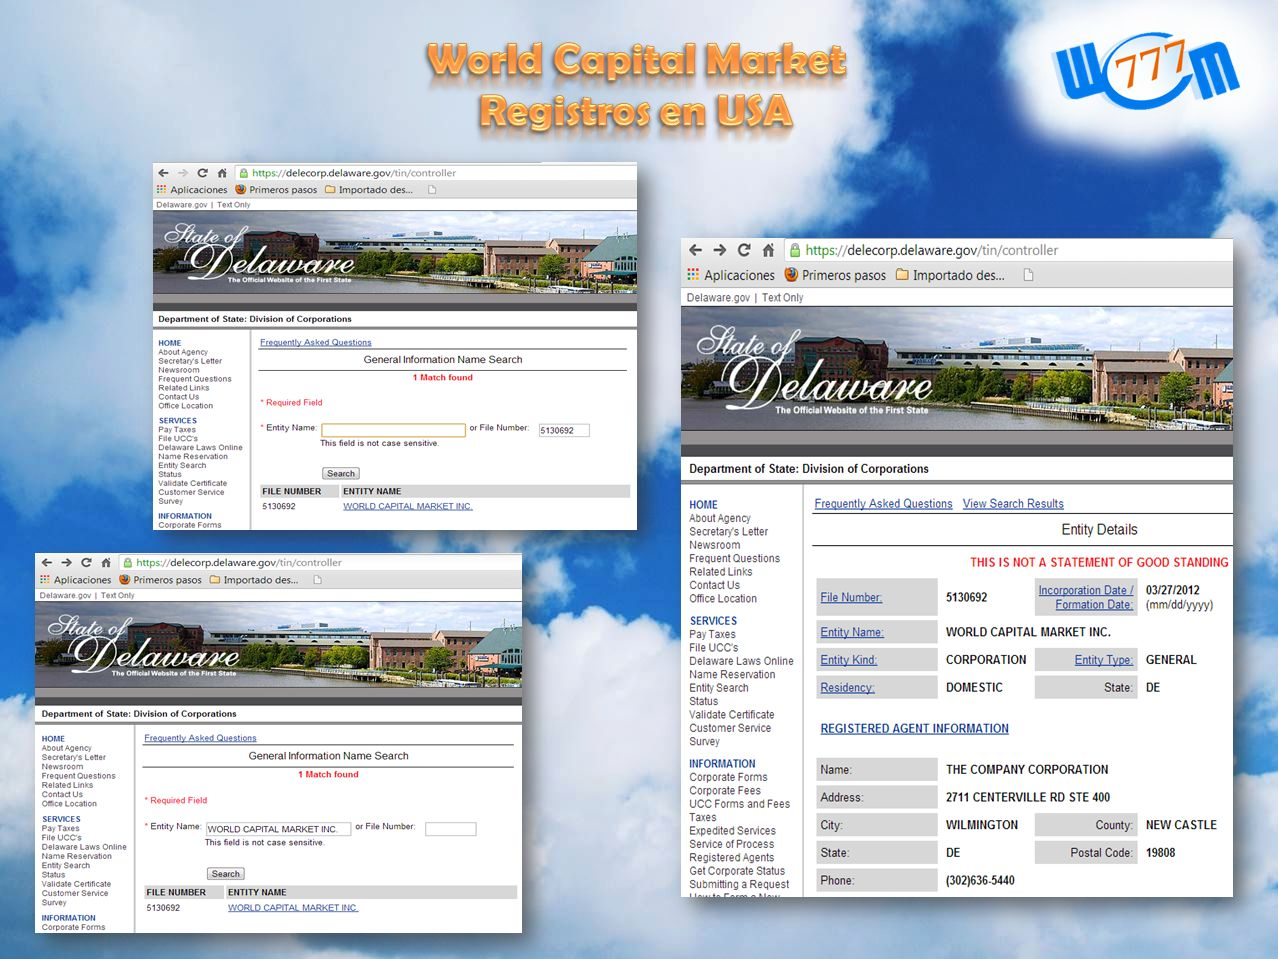 World Capital Market Registros en USA